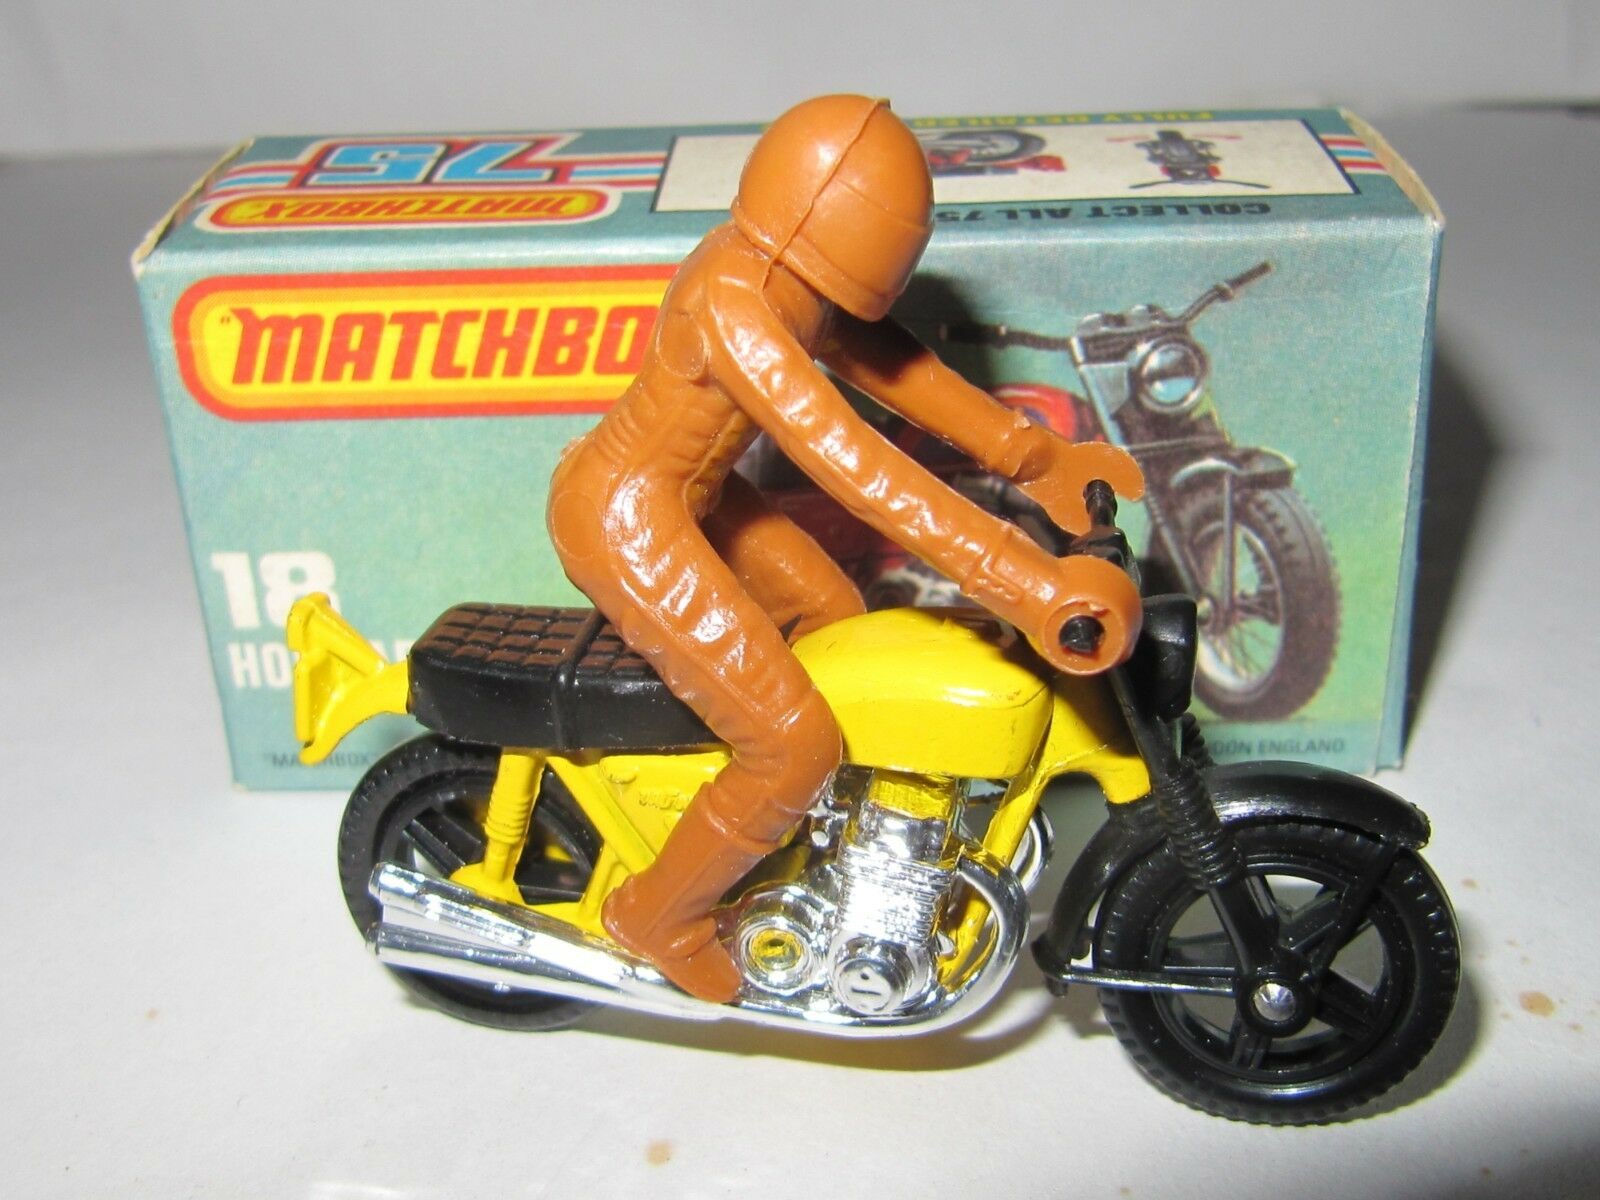 MATCHBOX SUPERFAST No.18 HONDARORA - YELLOW WITH RIDER MIB